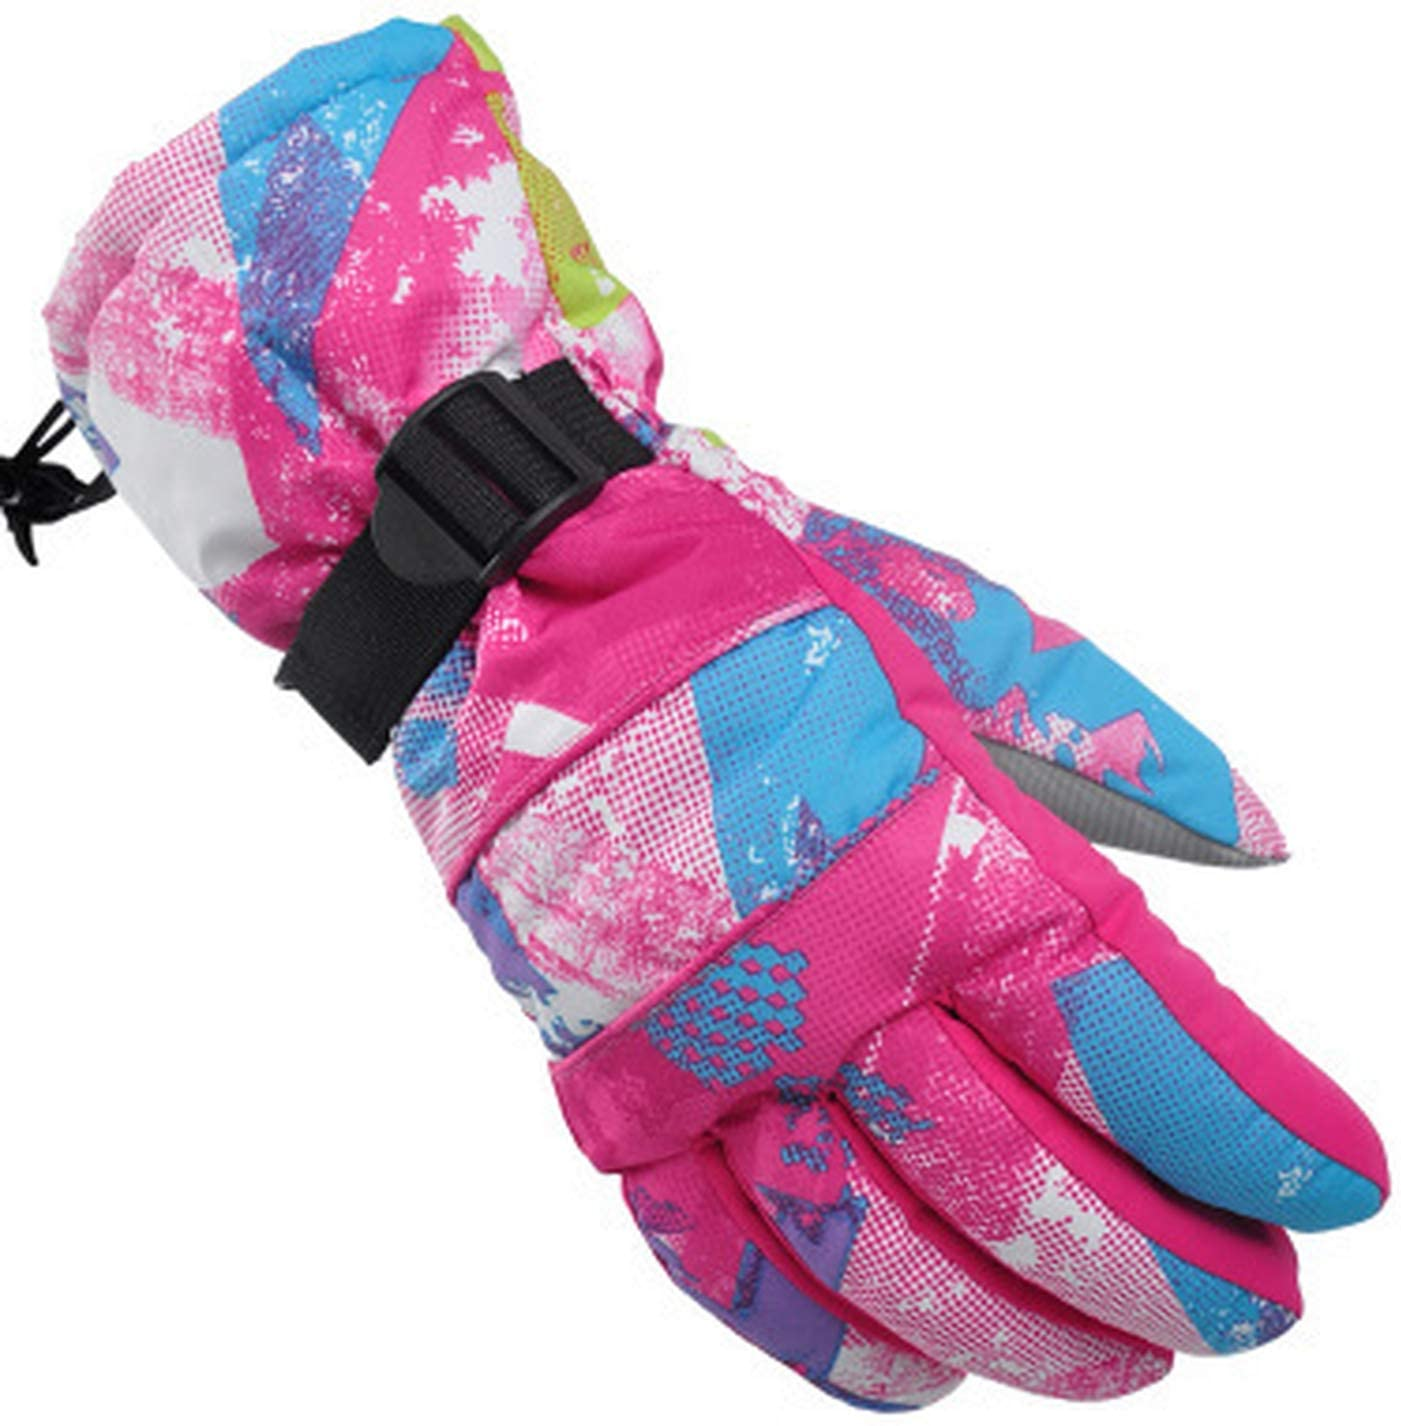 YR5V4V Snowboard Ski Gloves Unisex Windproof Waterproof Teens Breathable Warm Skiing Cycling Snow Women Men Glove Skiing Gloves,NO.8,L